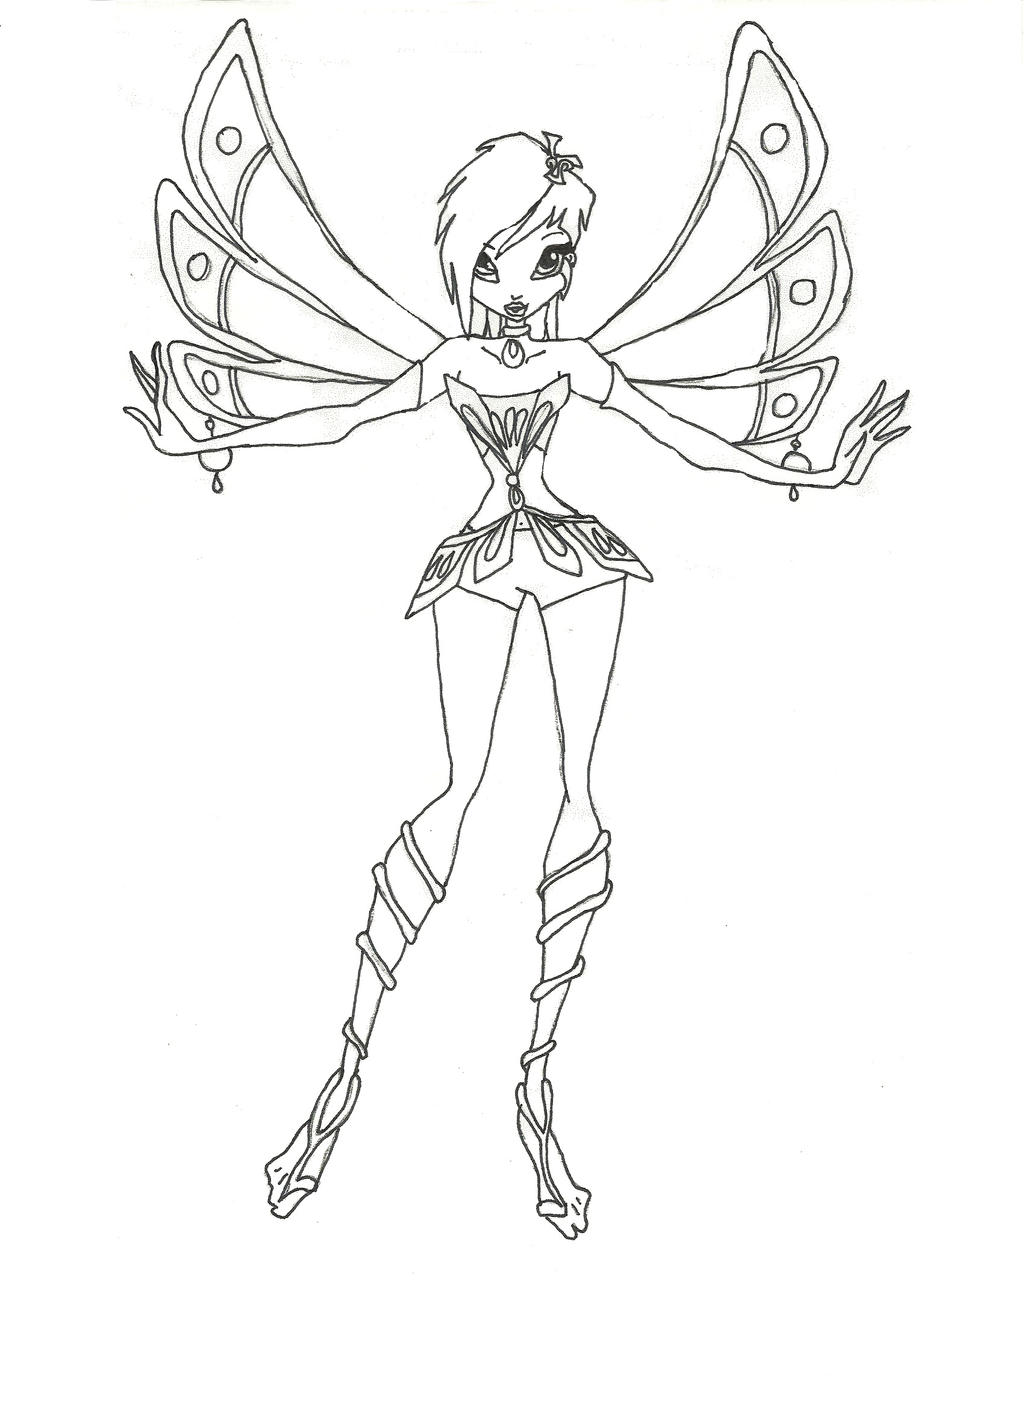 Free printable winx club coloring pages - Winx Club Enchantix Tecna Coloring Page By Winxmagic237